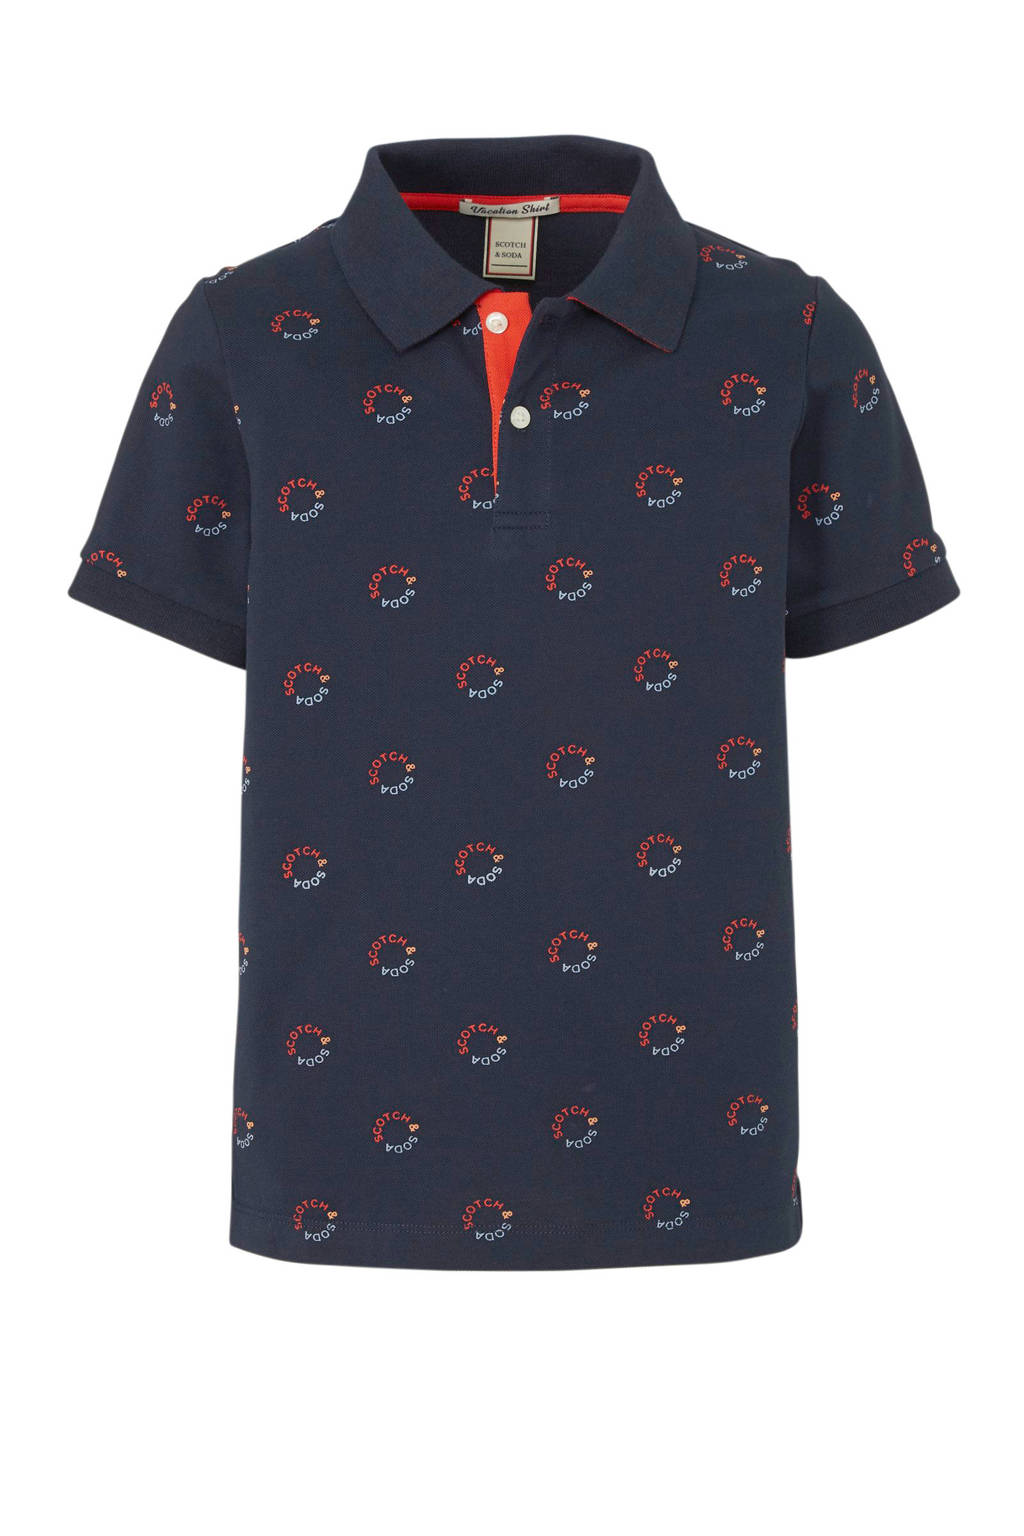 Scotch & Soda polo met all over print donkerblauw/rood/lichtblauw